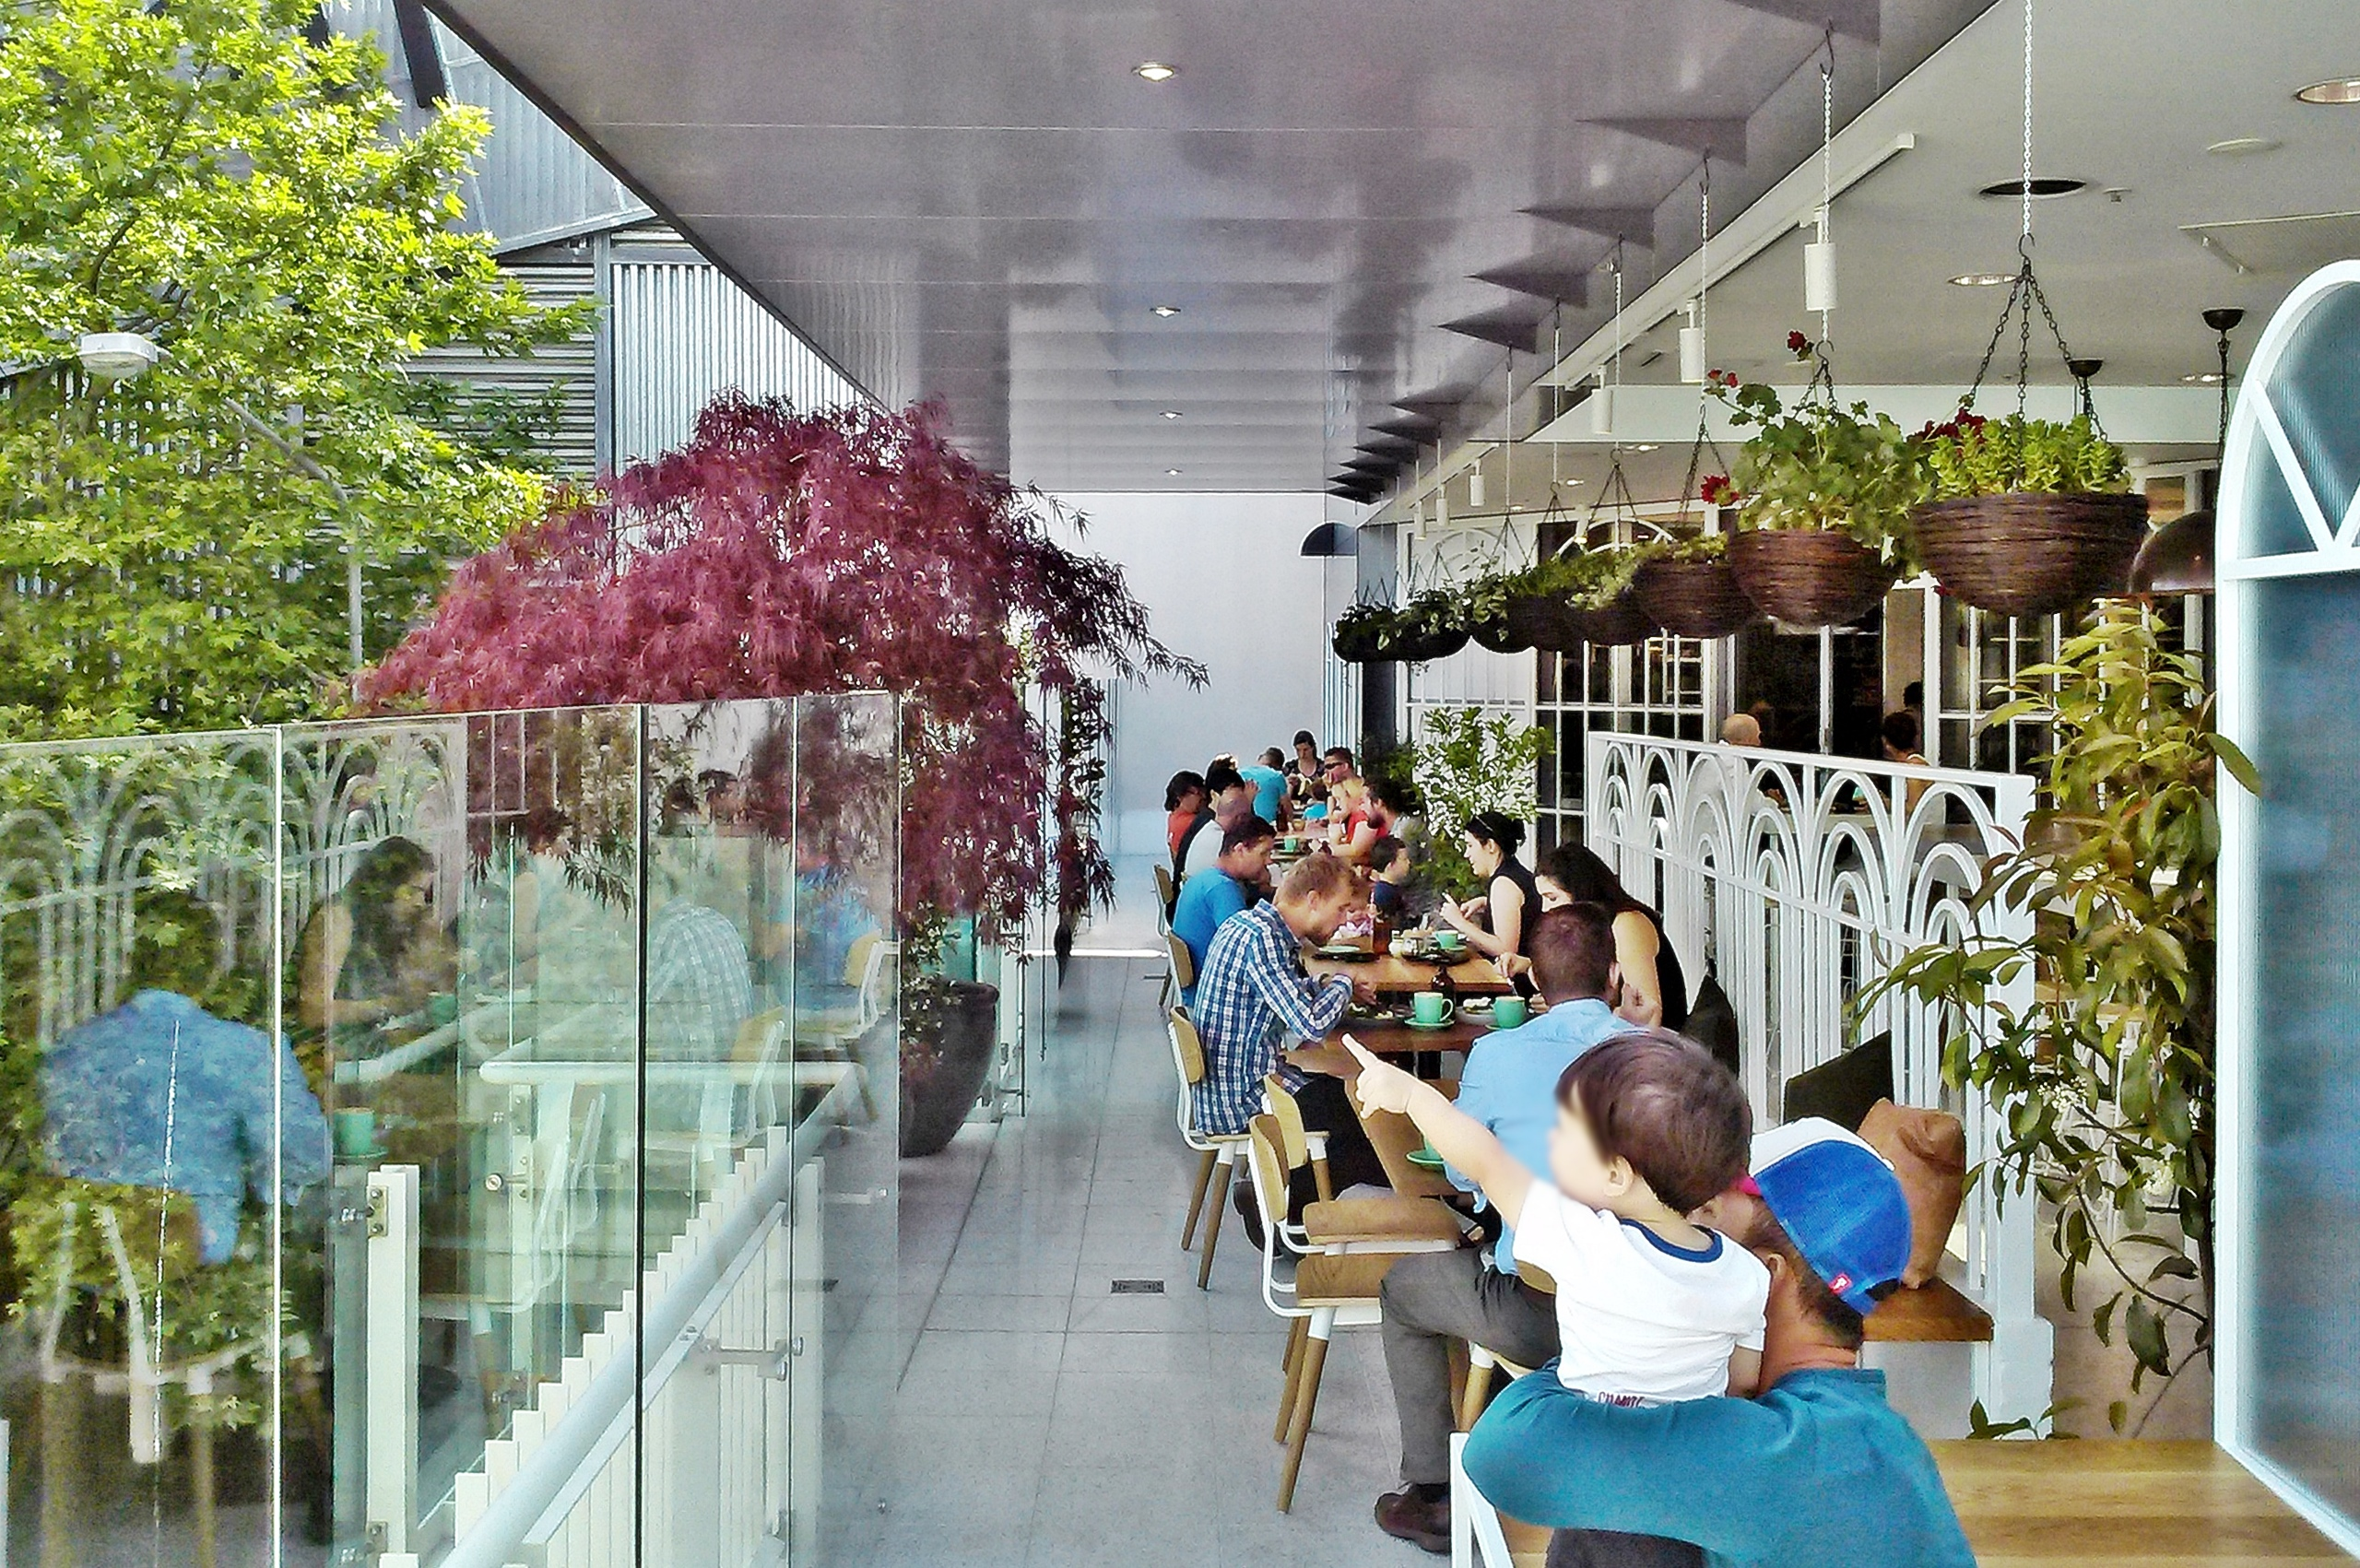 The greenhouse gold coast - Green House Cafe Canberra Breakfast Lunch Canberra Centre Ona